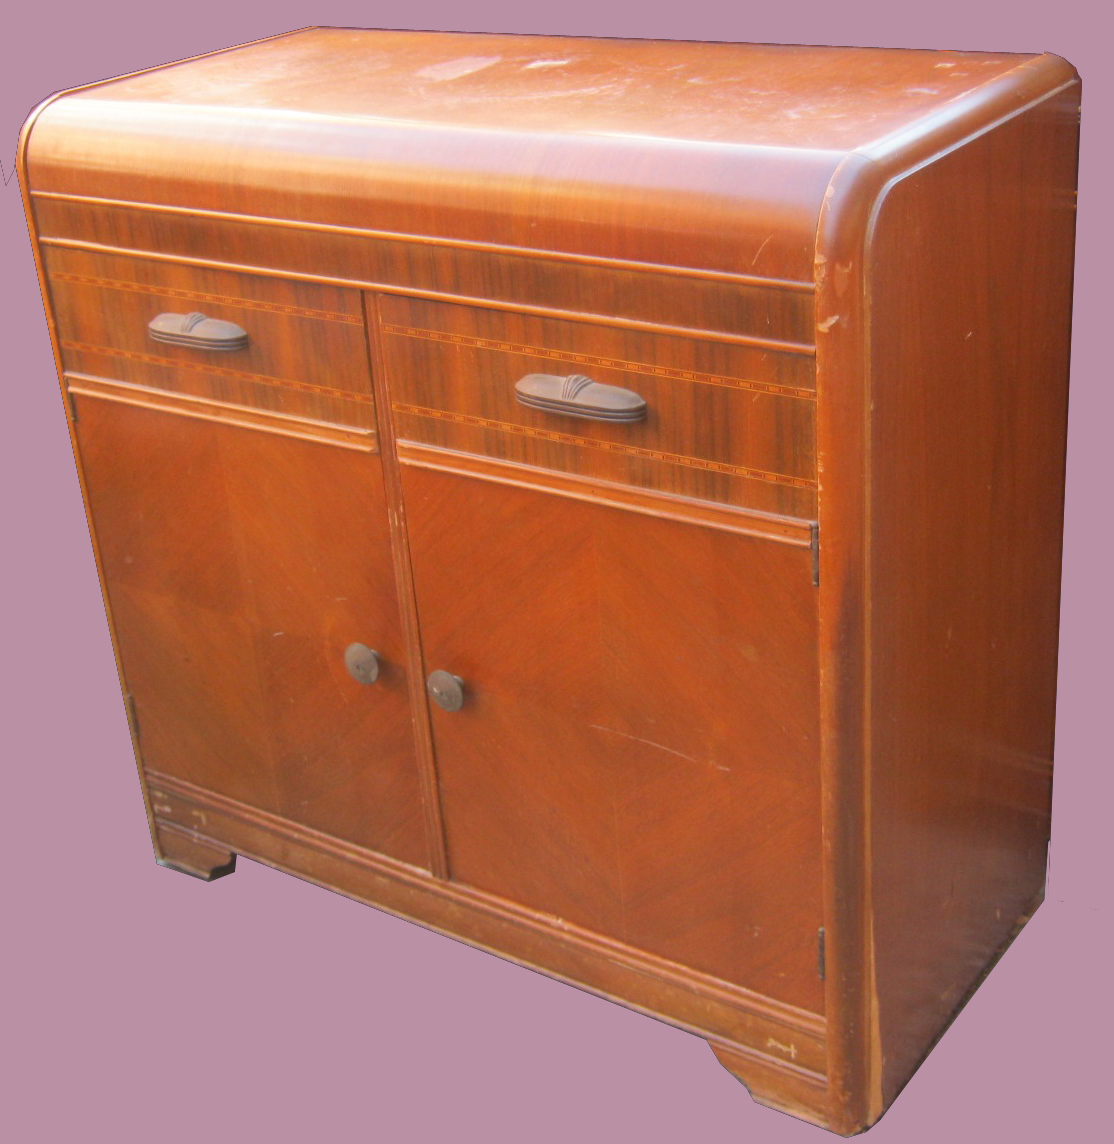 uhuru furniture collectibles 1930s buffet and server sold. Black Bedroom Furniture Sets. Home Design Ideas